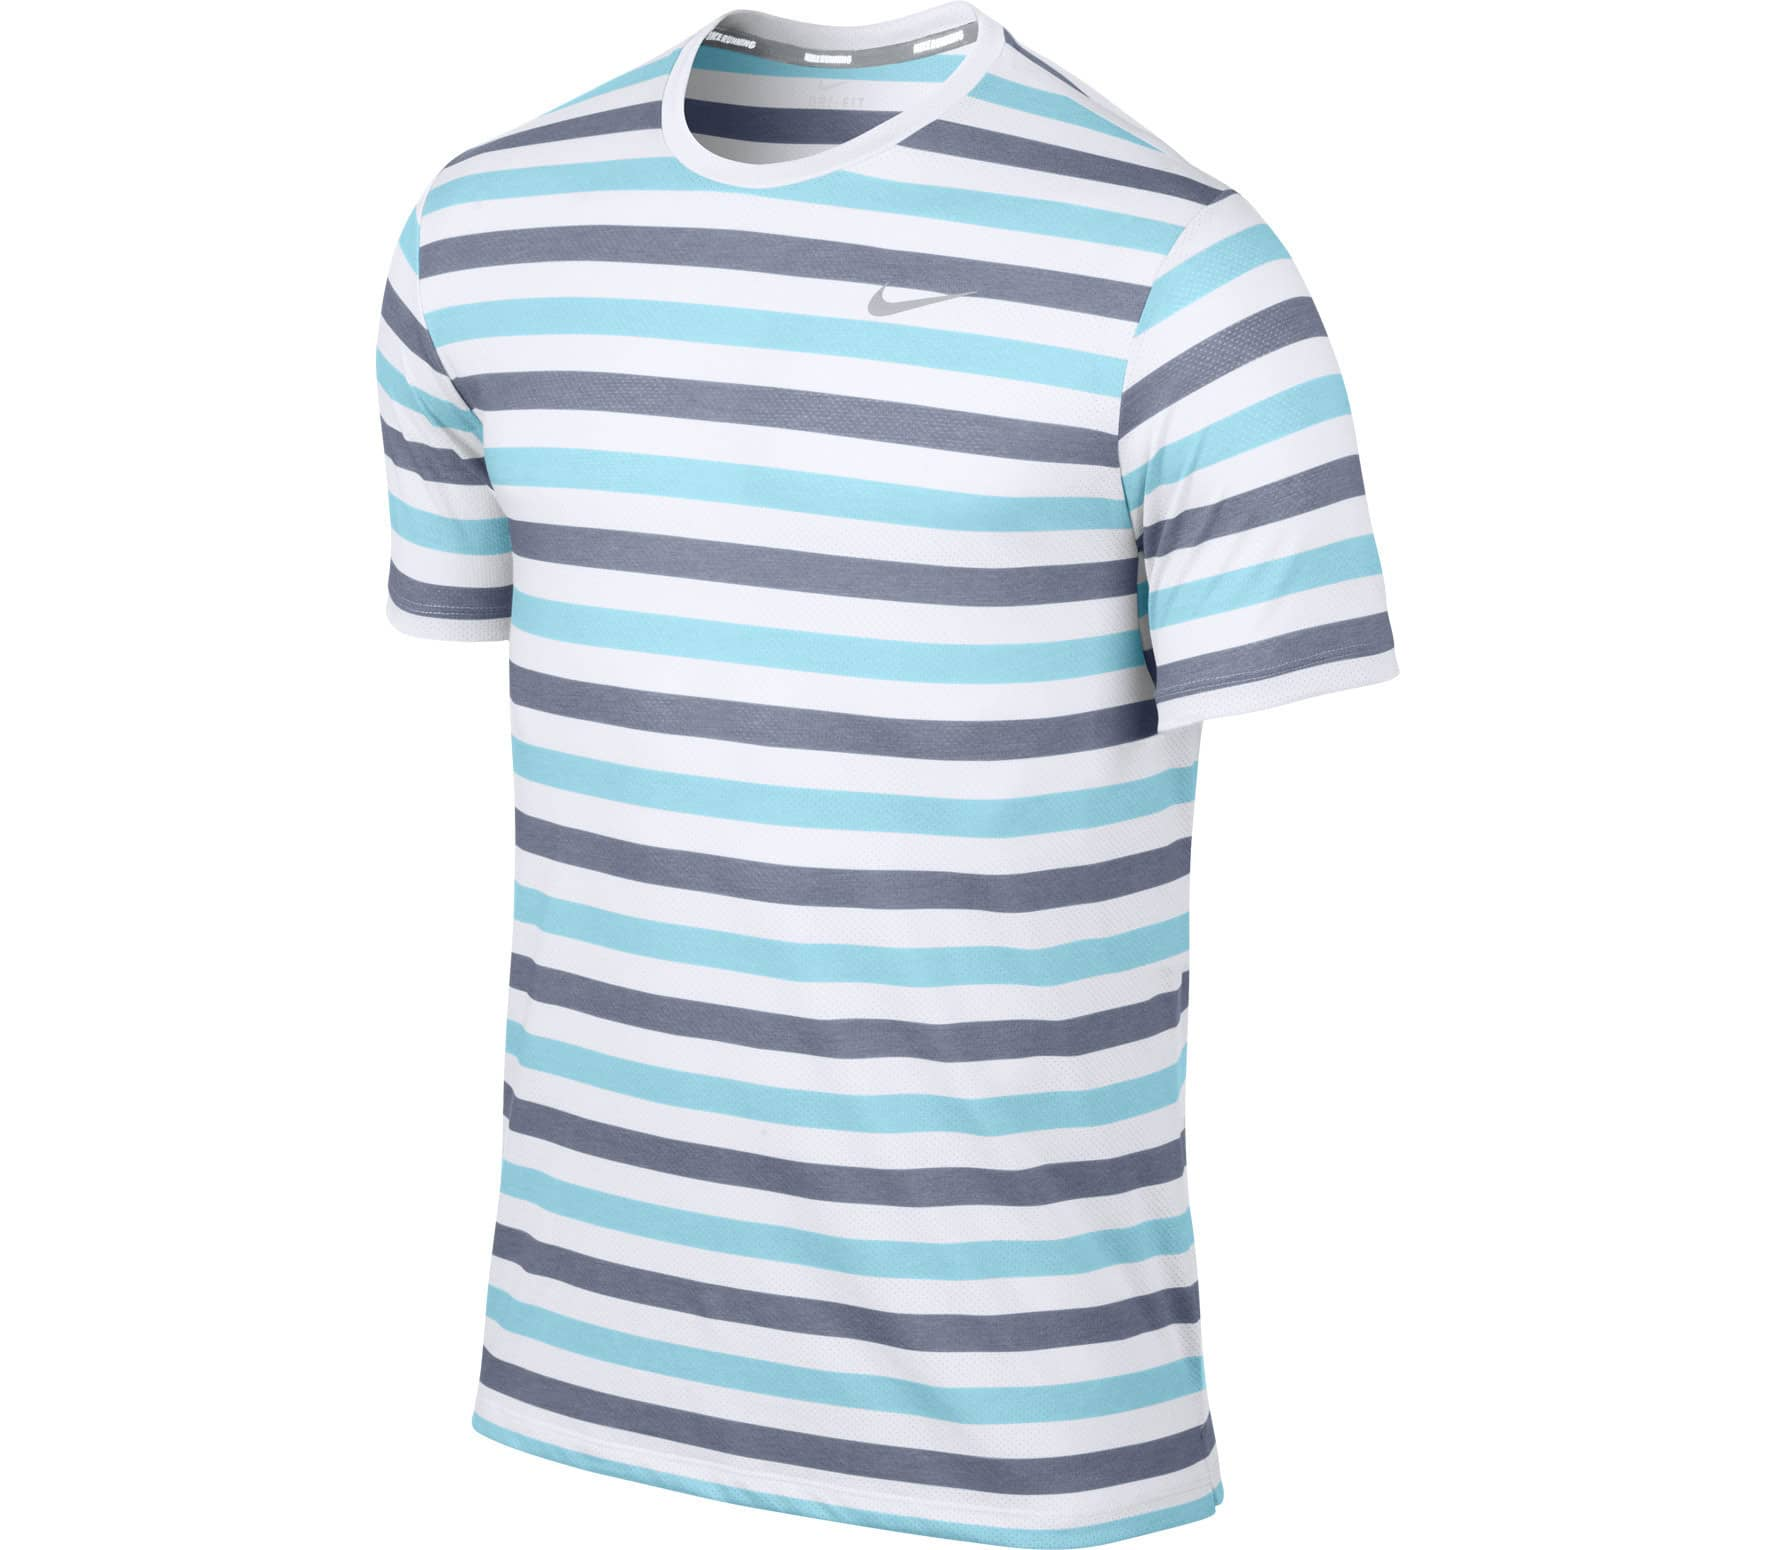 Men's Clothing Activewear Tops Nike Mens Stripped Sports Top